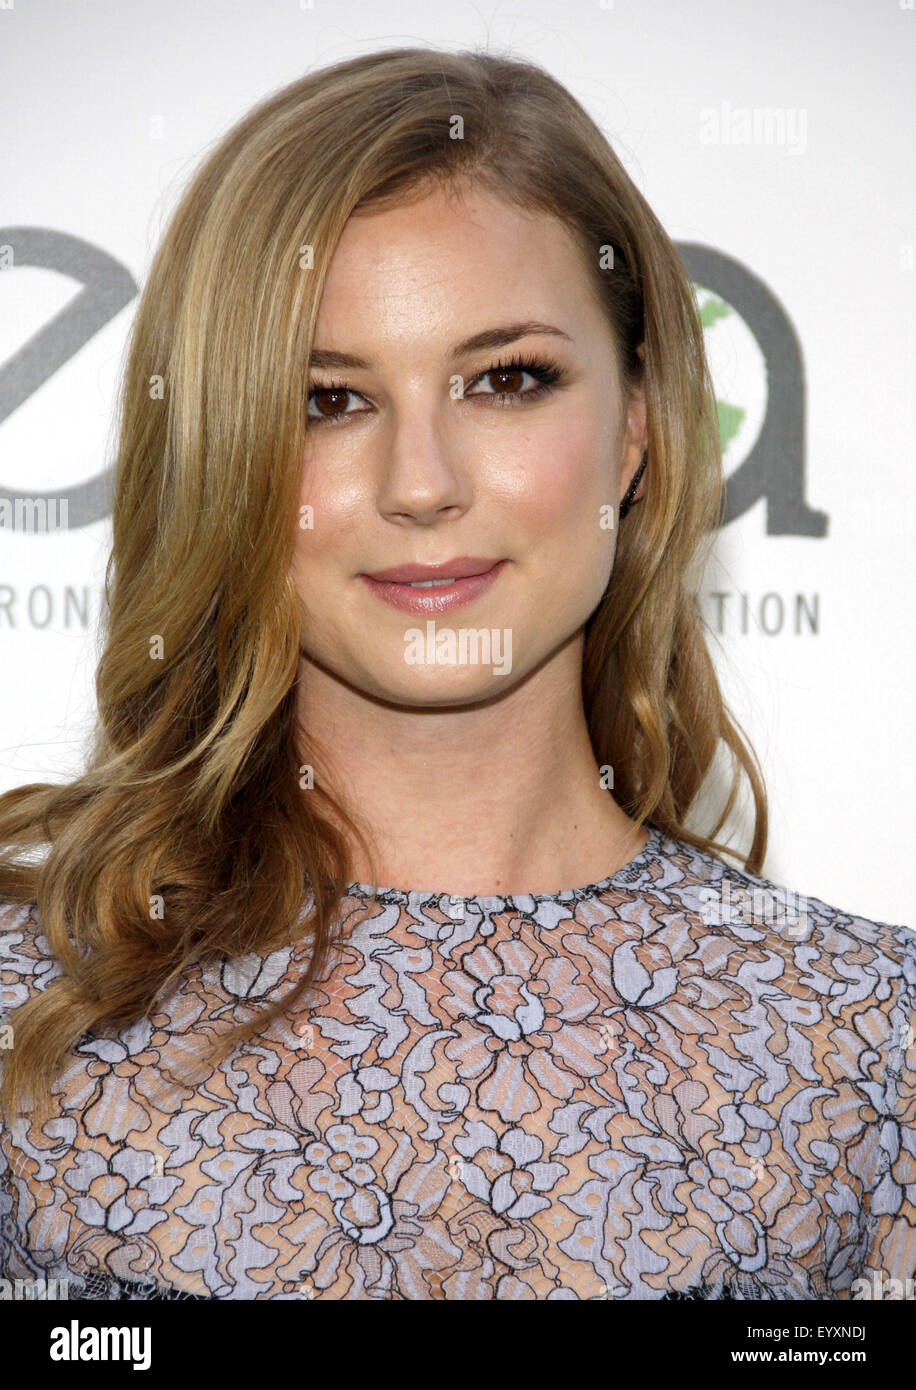 Communication on this topic: Trophies Nude Celebs Forum, 18-emily-vancamp/